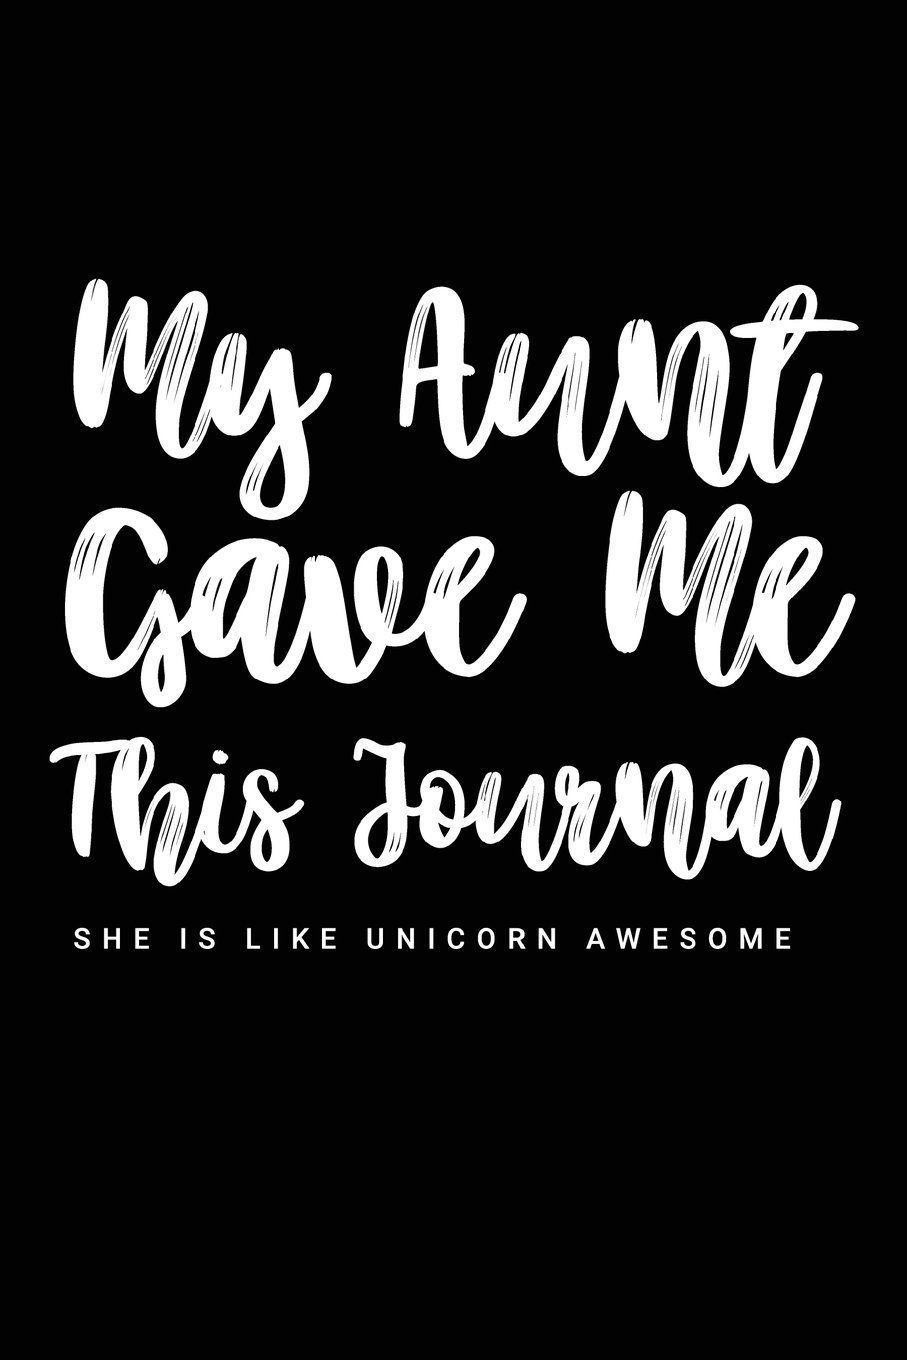 My Aunt Gave Me This Journal She Is Like Unicorn Awesome: Niece Gifts From Aunt - 6x9 Journal Notebook ebook